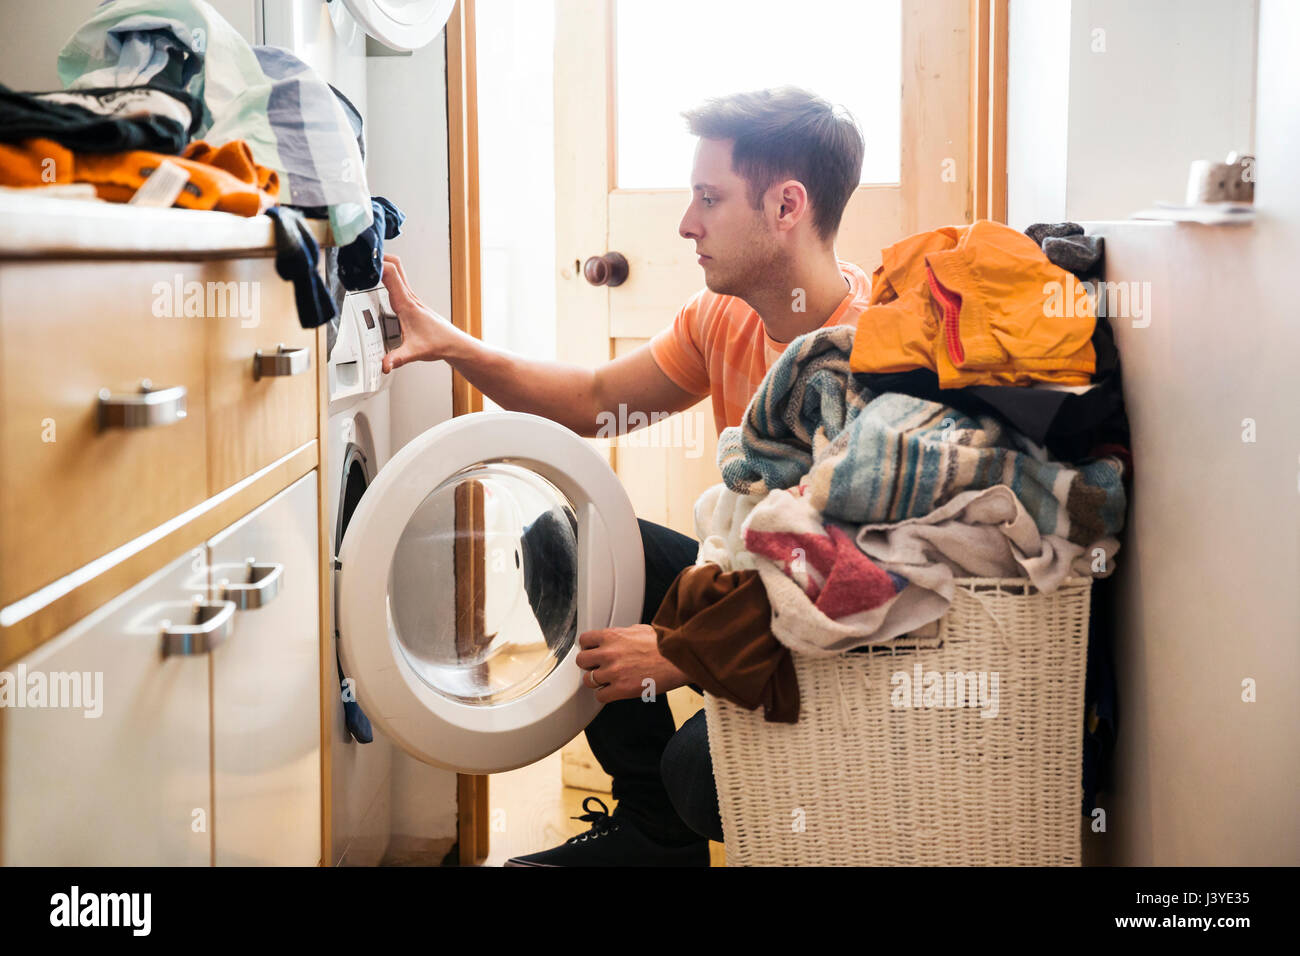 Man doing laundry at home - Stock Image